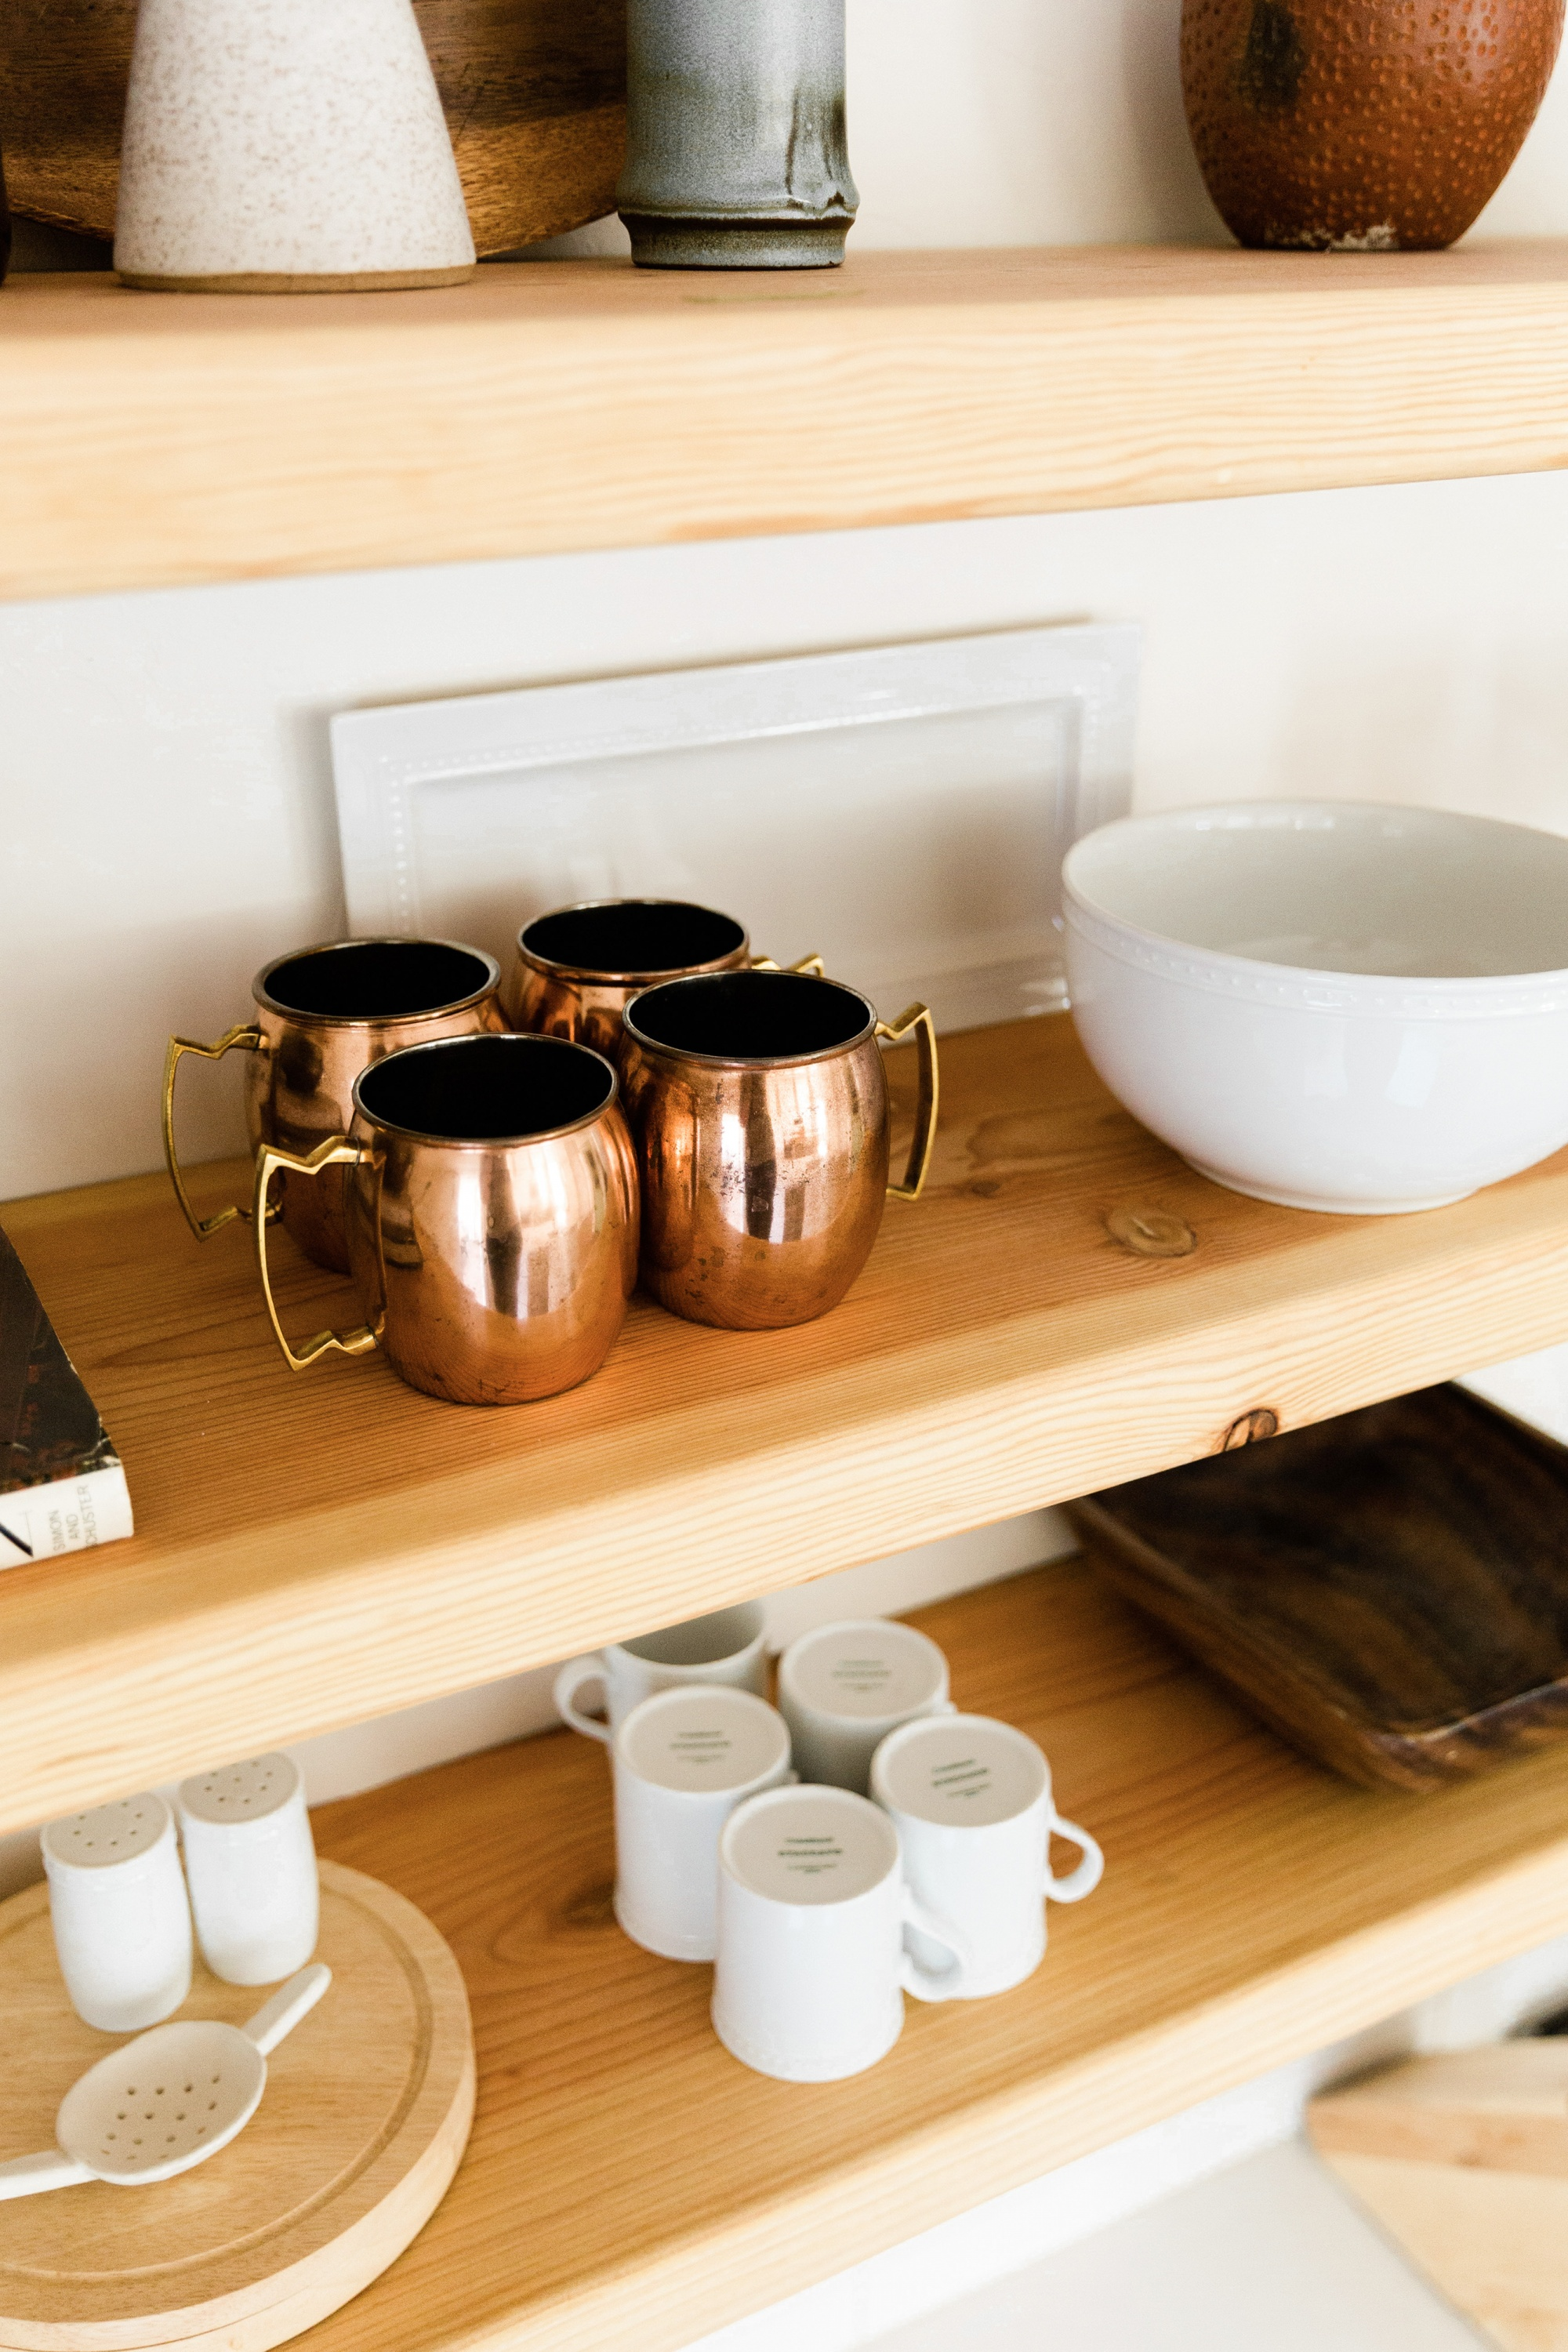 How To Style Pinterest-Worthy Floating Kitchen Shelves mugs and bowls on a shelf